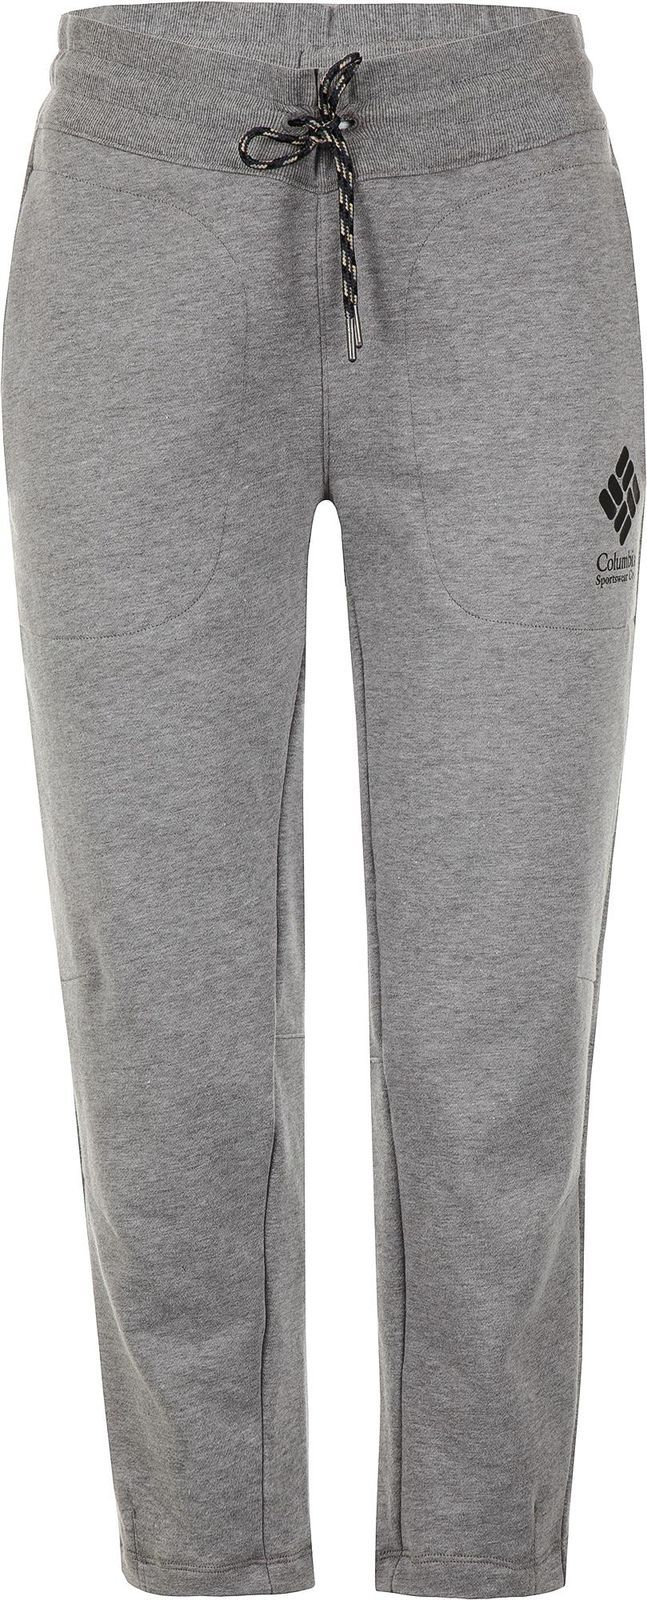 Фото - Бриджи/капри Columbia CSC W Bugasweat Capri Jogger капри женские the north face w aphrodite capri цвет синий t92uo6n4l размер xs 40